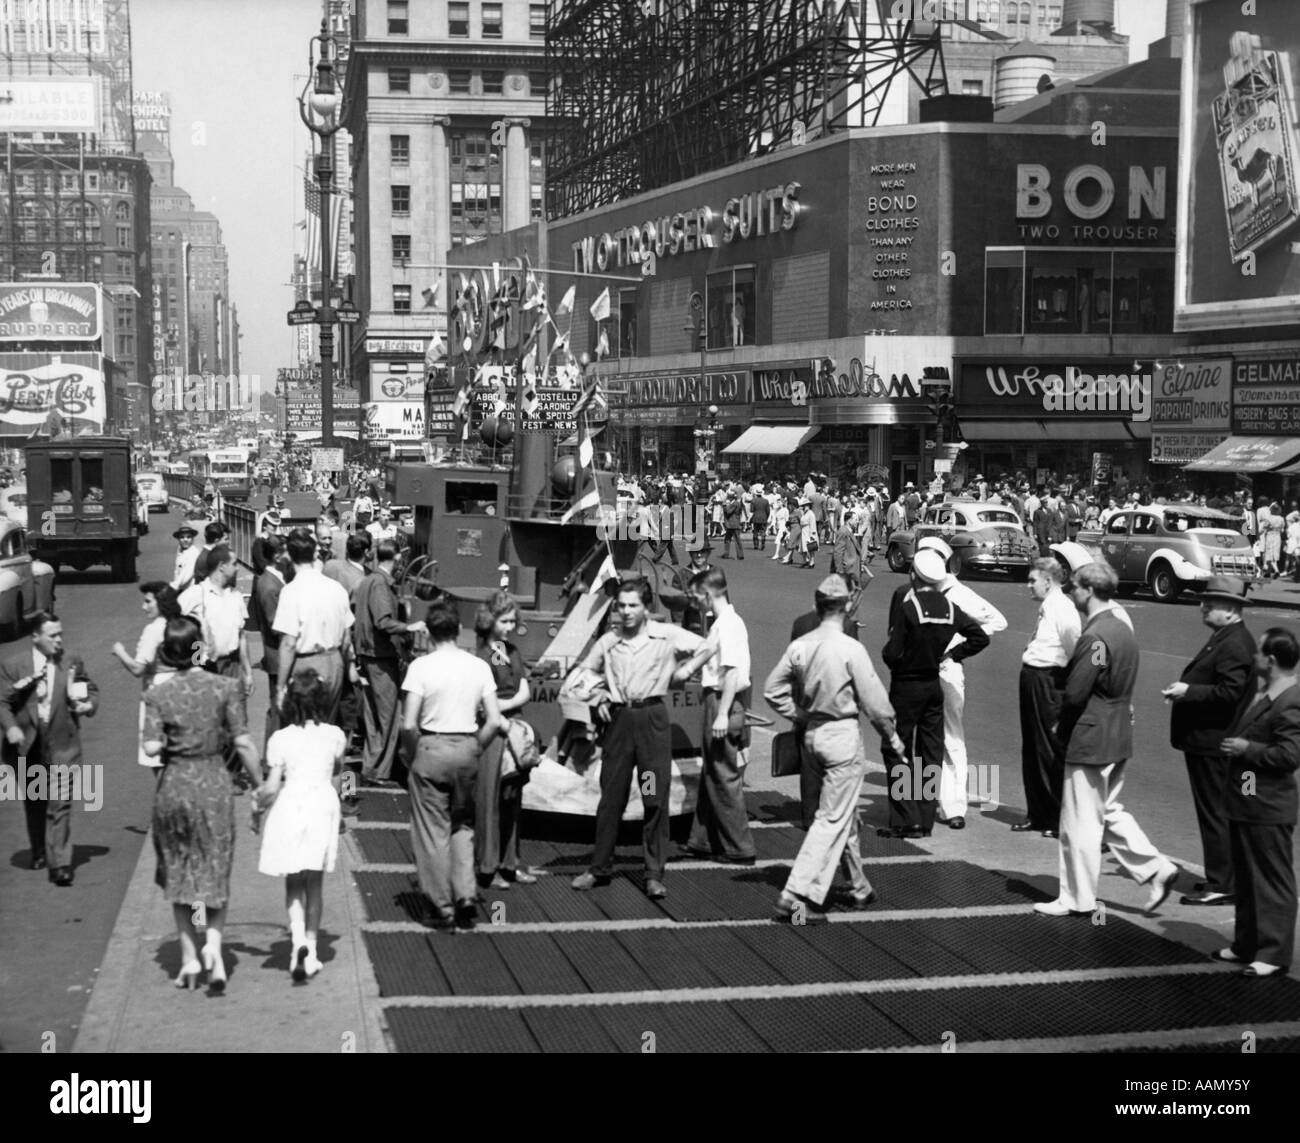 1940s WWII WARTIME TIMES SQUARE MANHATTAN PEDESTRIANS TRAFFIC TWO SAILORS NEAR MODEL OF NAVY SHIP RECRUITING STATION - Stock Image